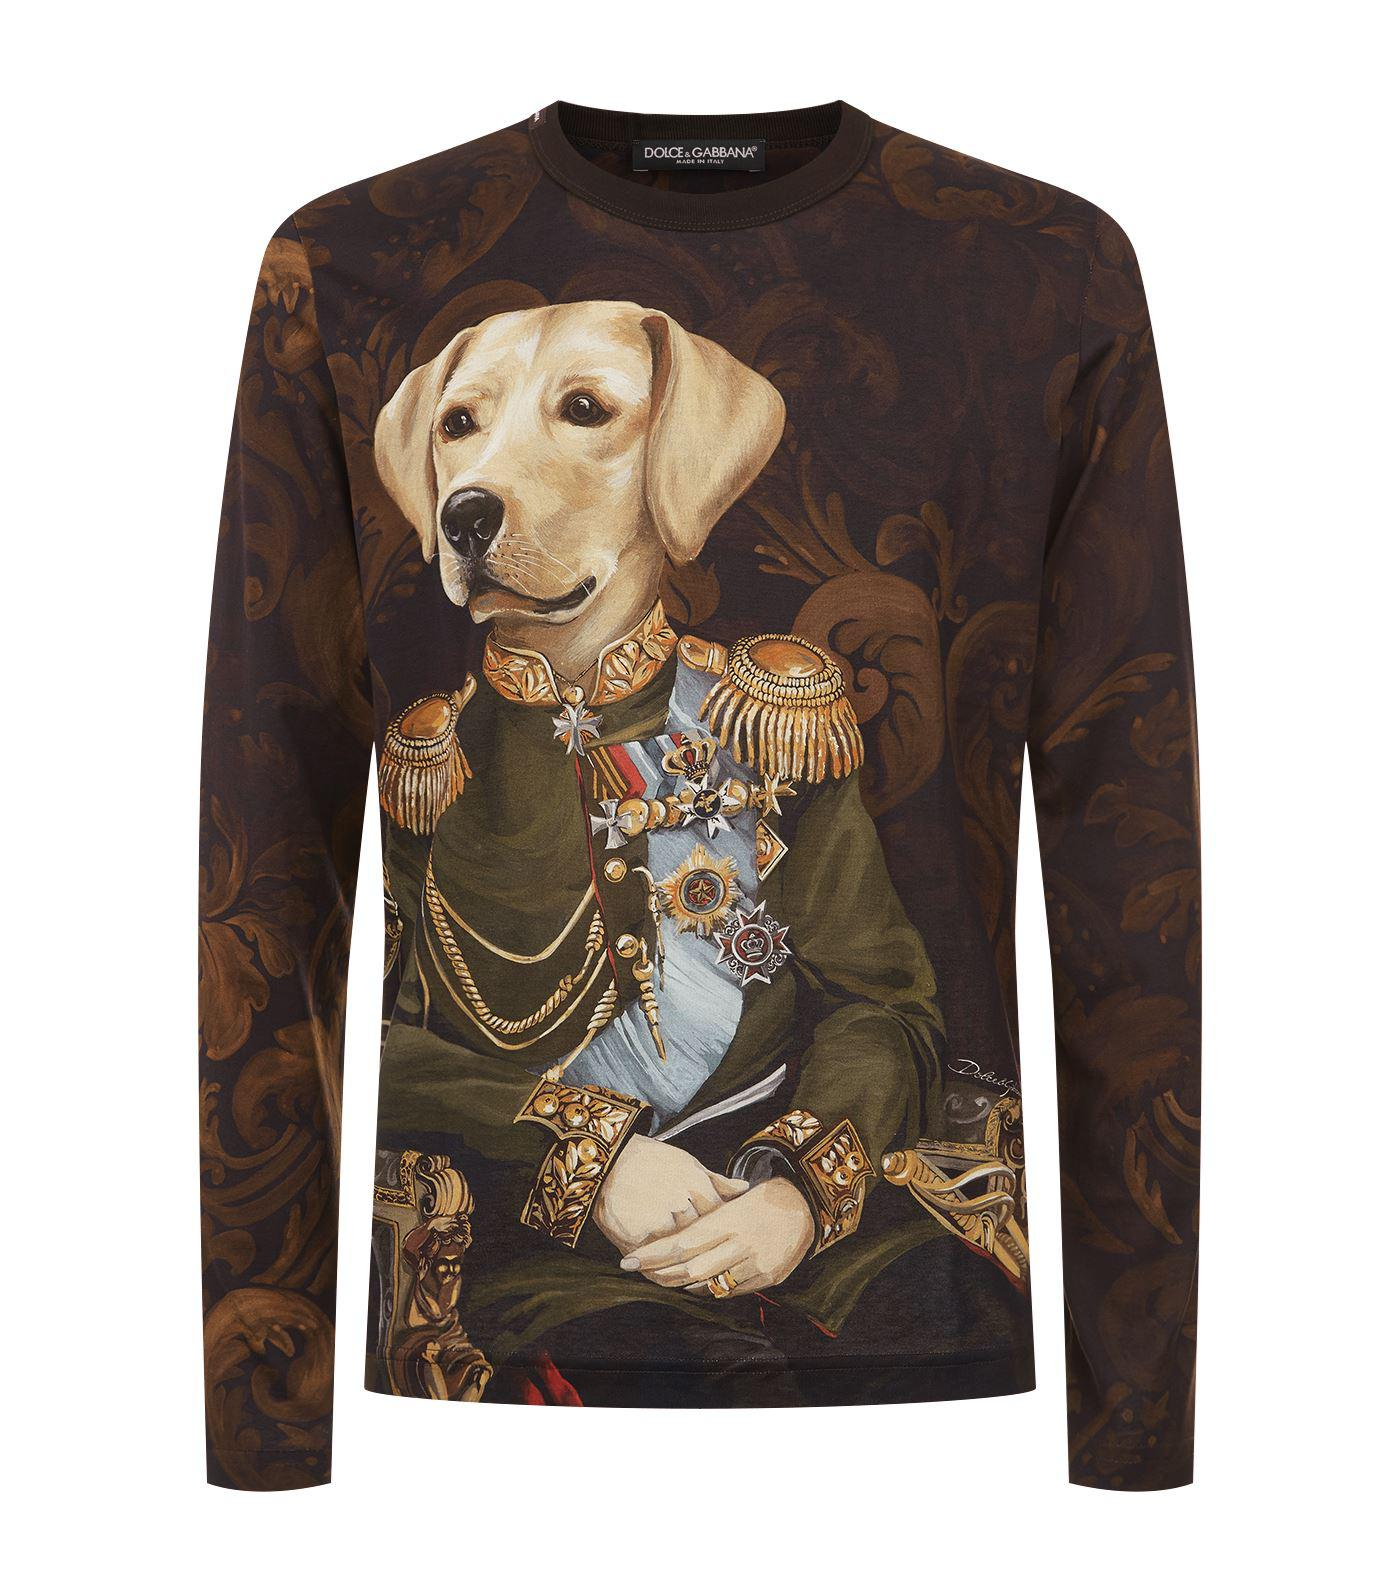 d7237965 Dolce & Gabbana Long-sleeved Dog T-shirt for Men - Lyst